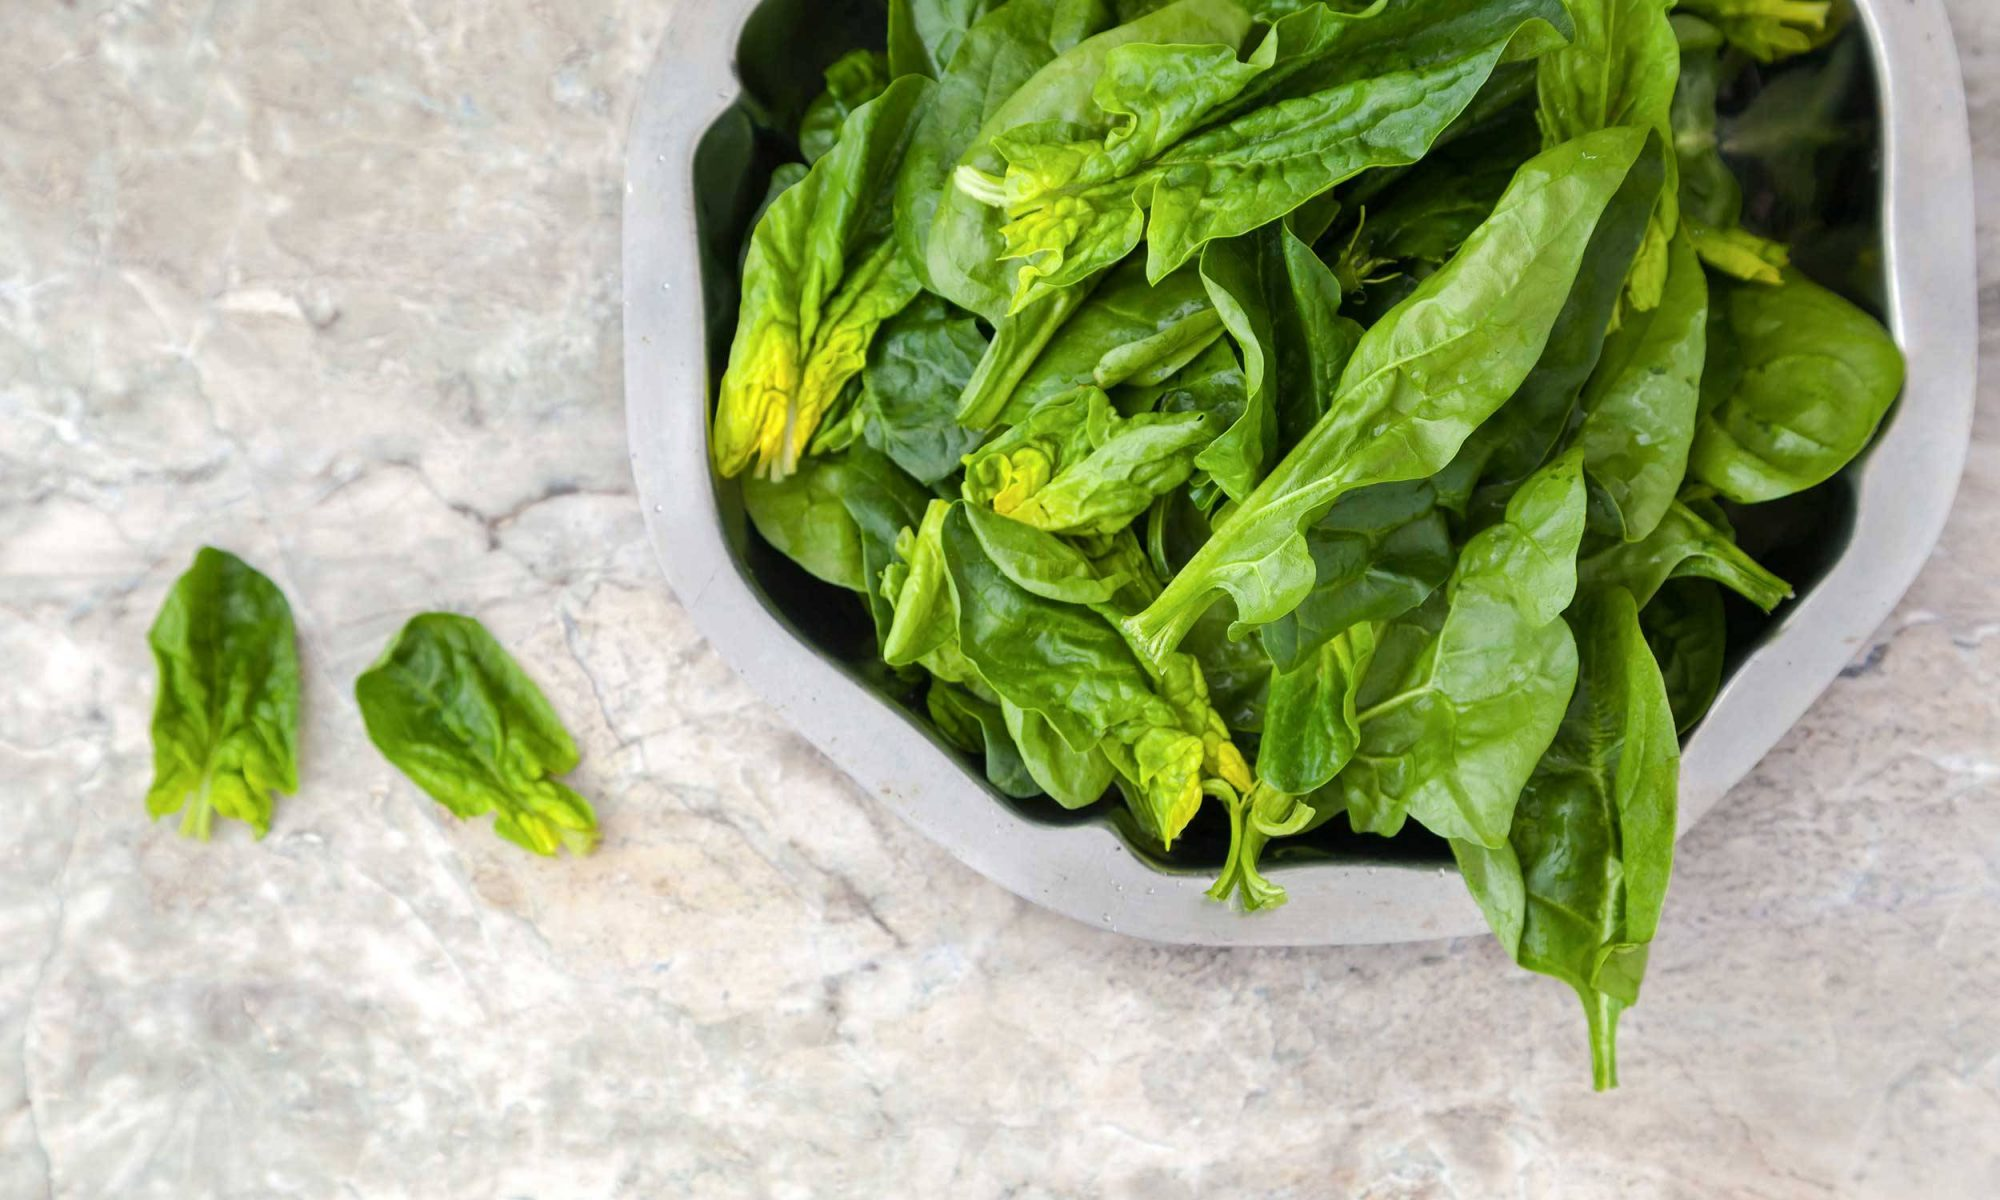 EC: How to Store Spinach So It Doesn't Get Slimy